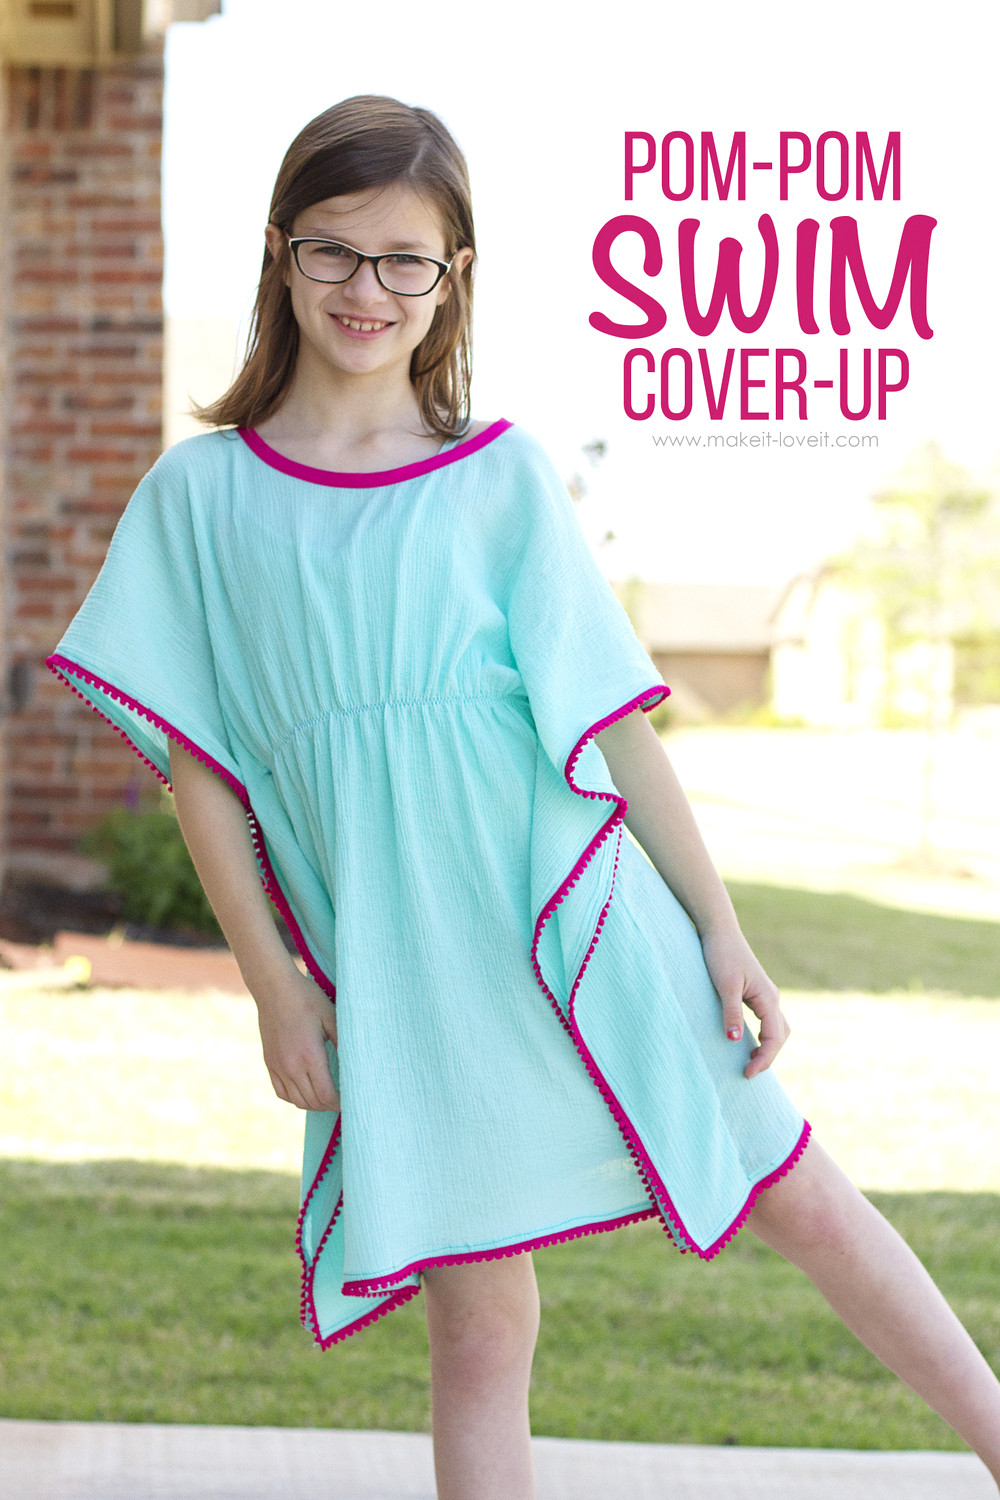 Best ideas about DIY Swimsuit Cover Ups . Save or Pin DIY Pom Pom Swim Cover Up Now.